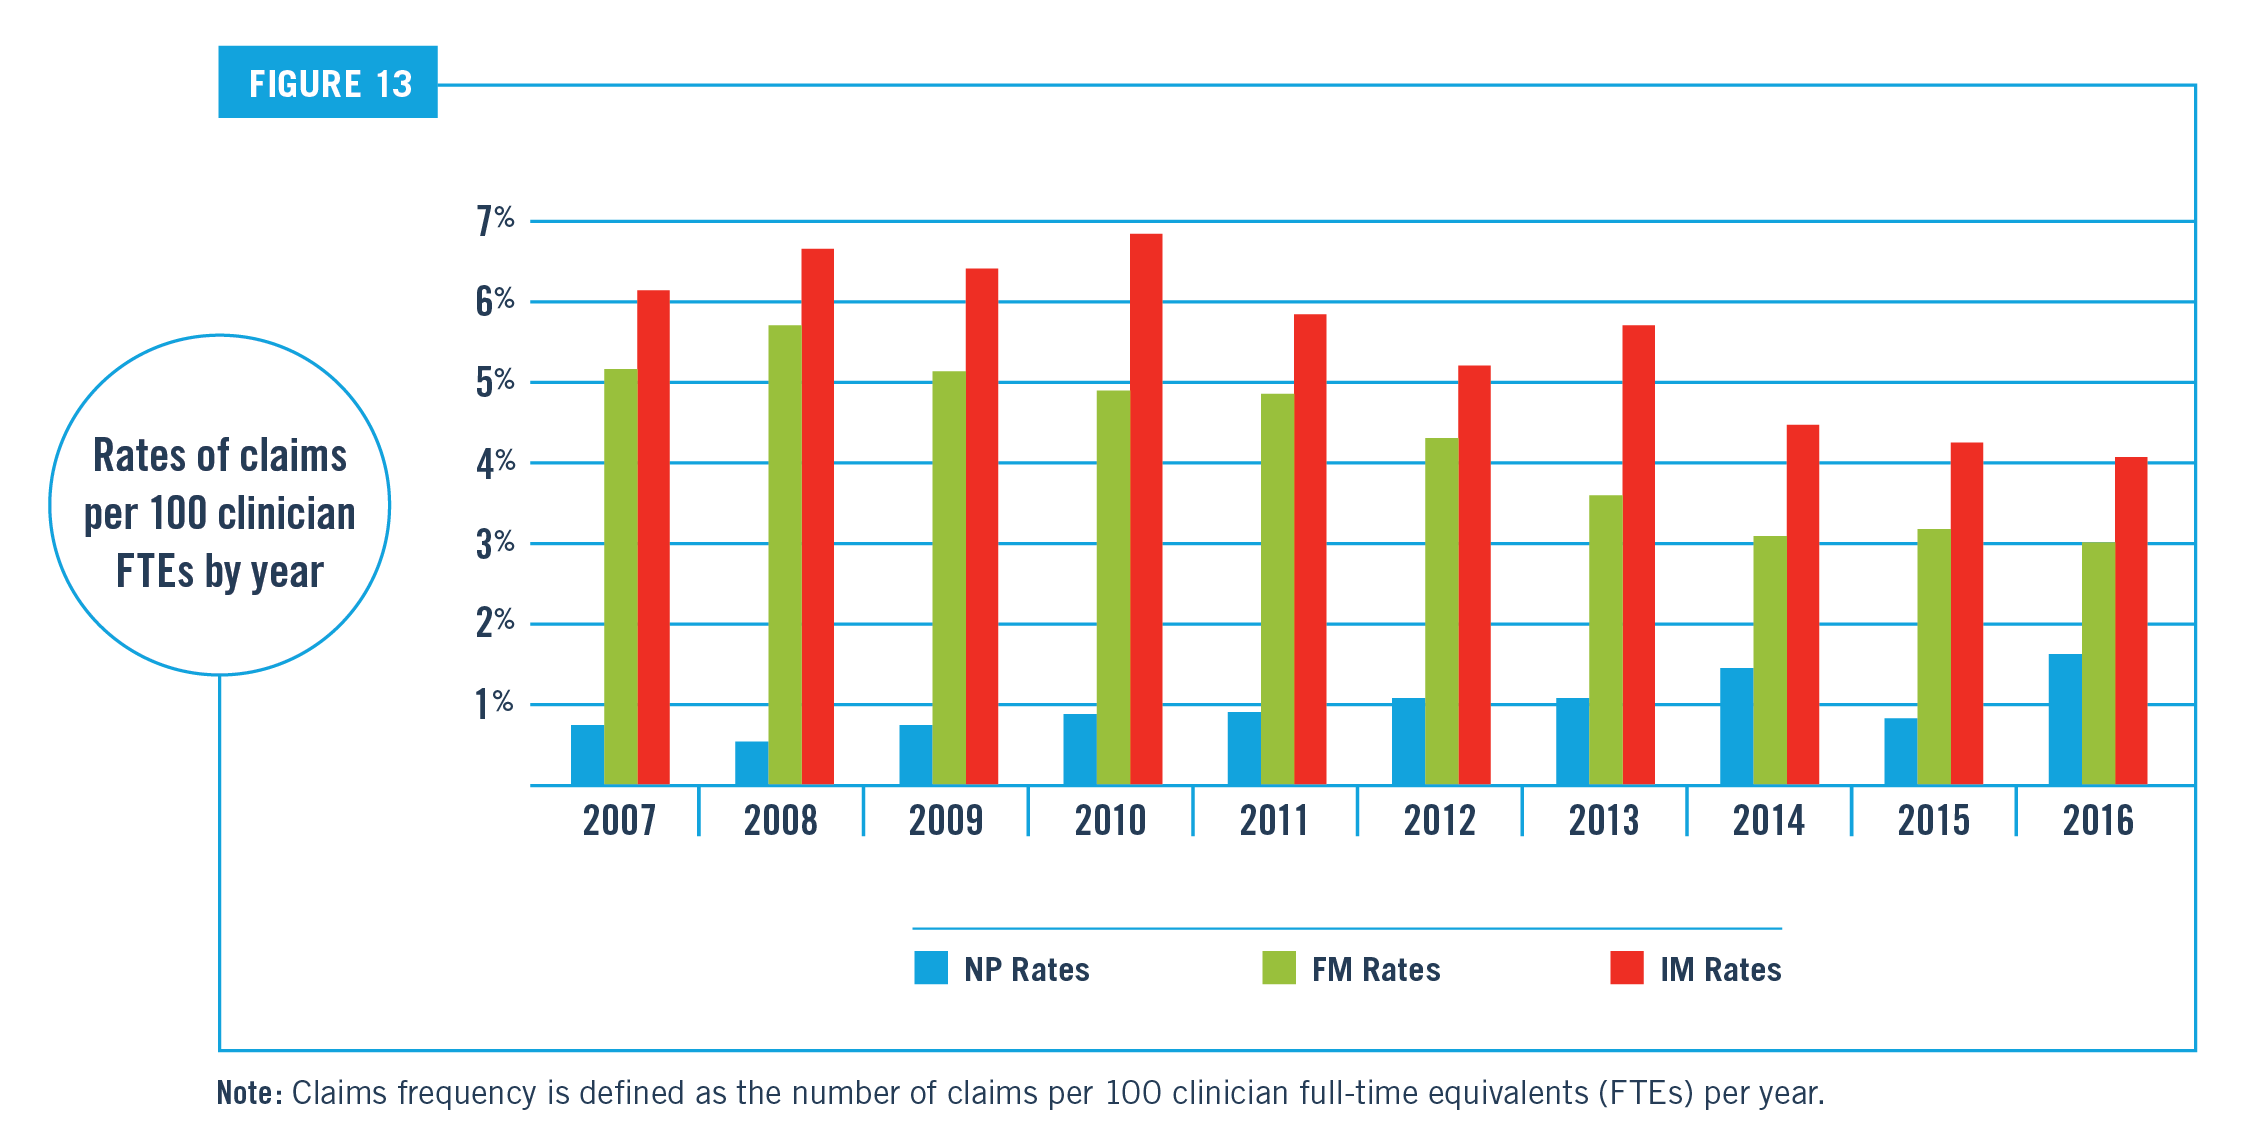 Rates of Claims per 100 Clinician FTEs by Year Chart